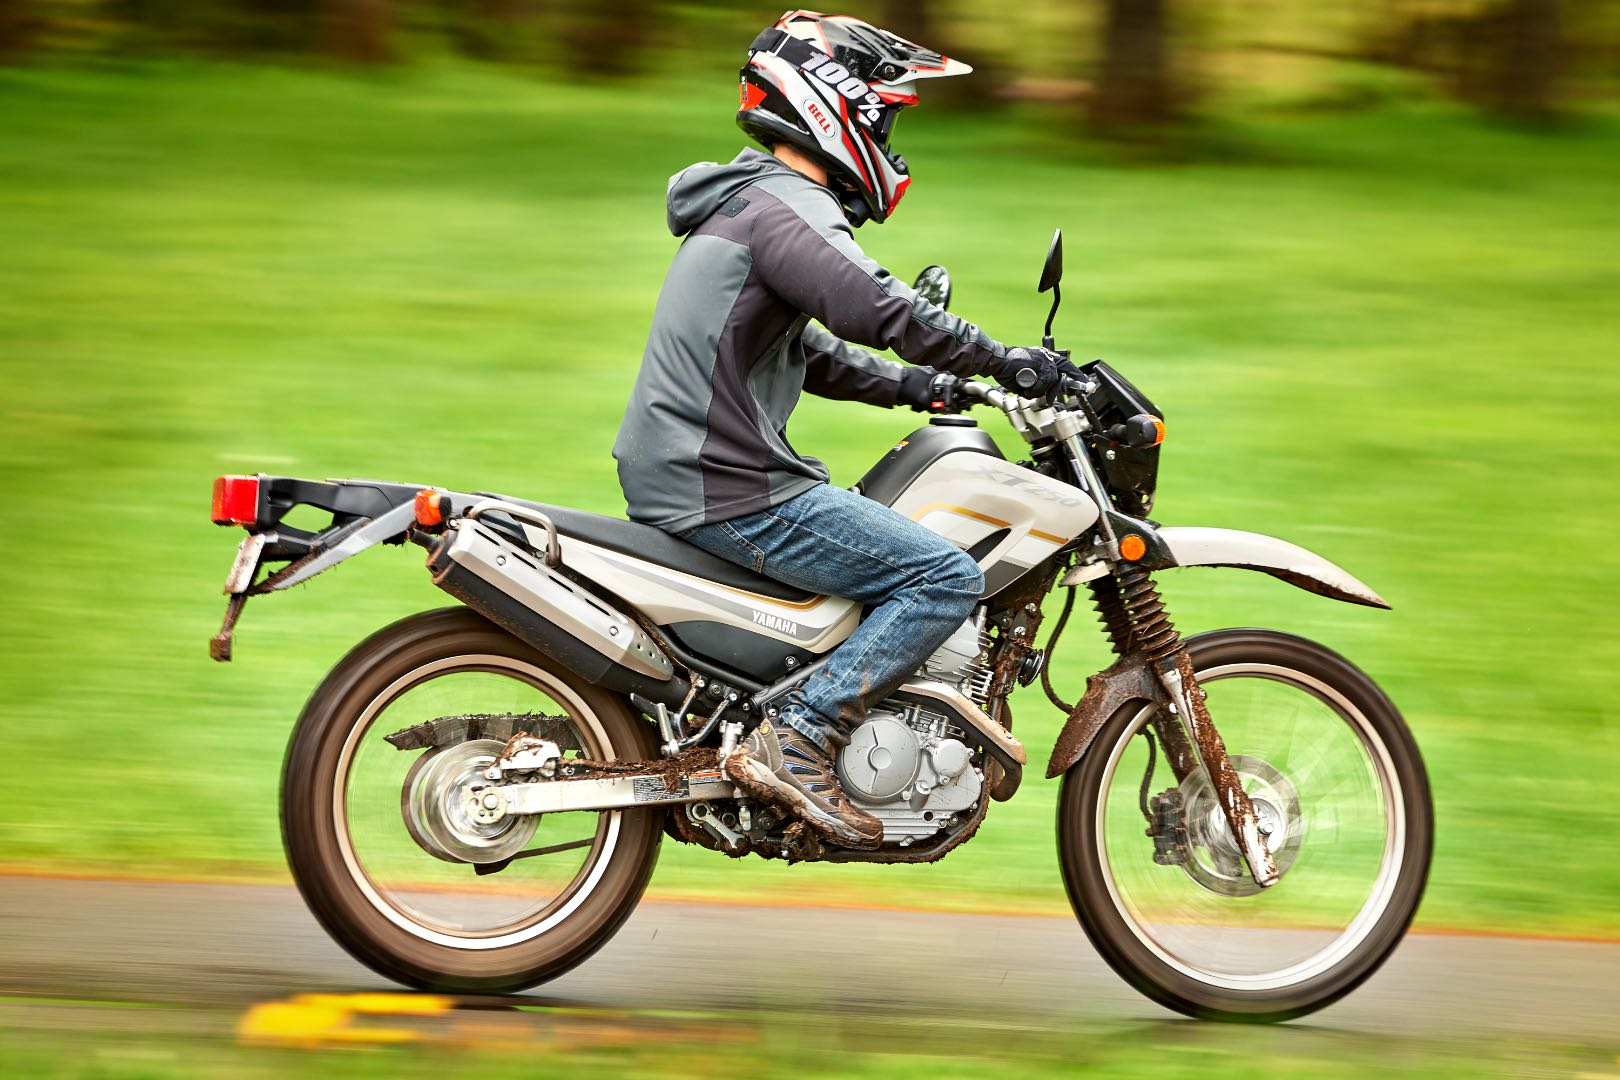 Yamaha Dual Sport Motorcycles For Sale